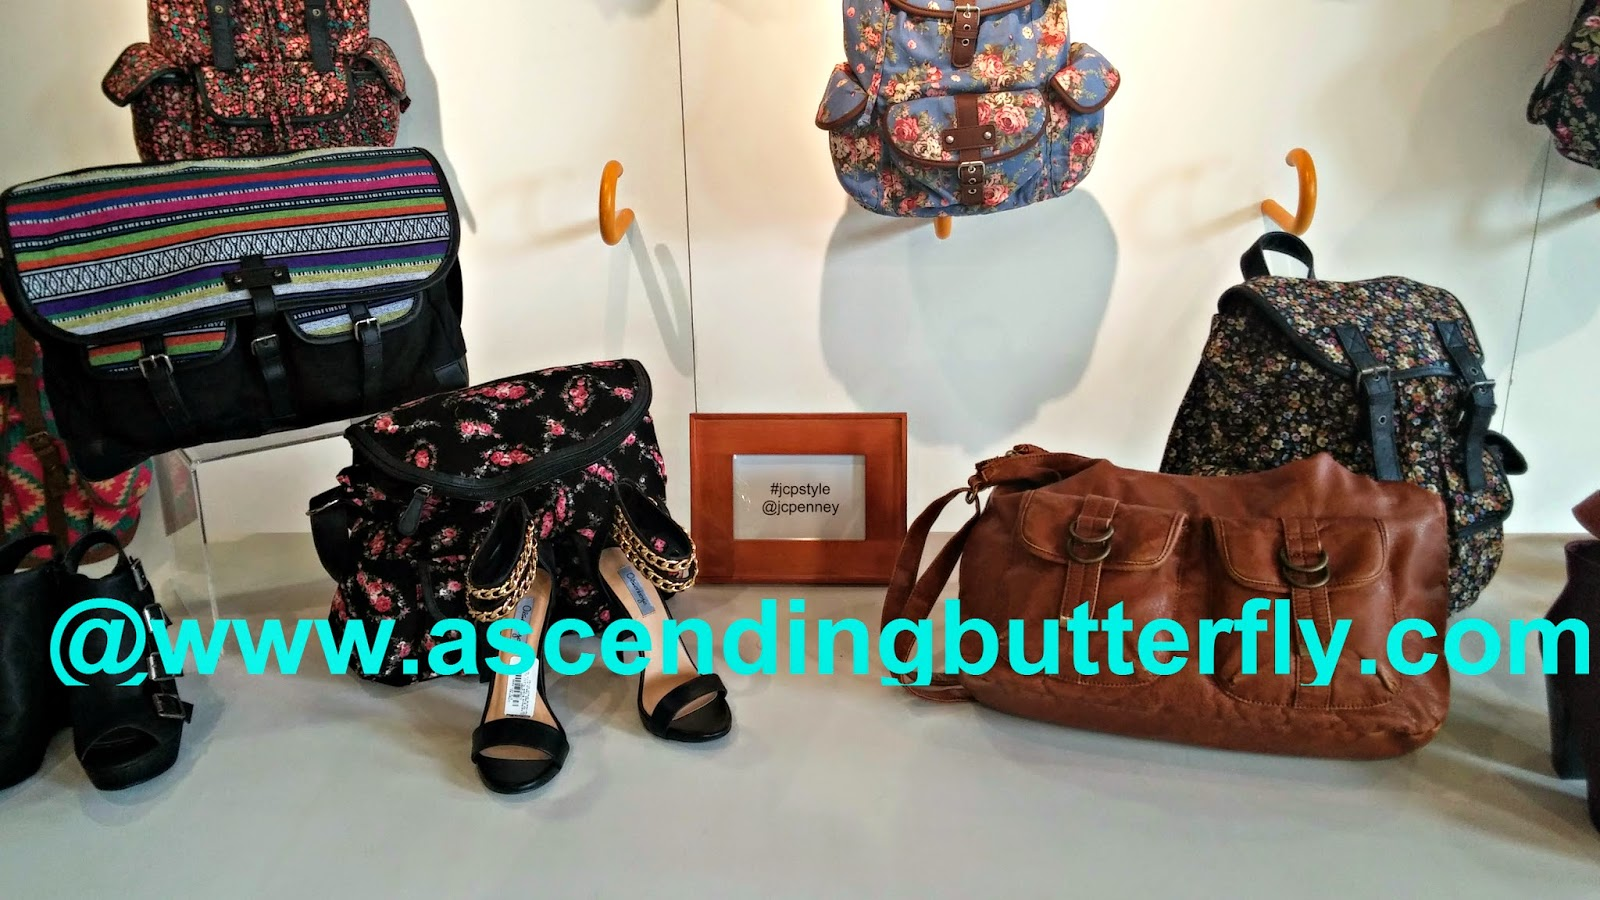 Backpacks/Book Bags and shoes/boots for Back to School via JCPenney